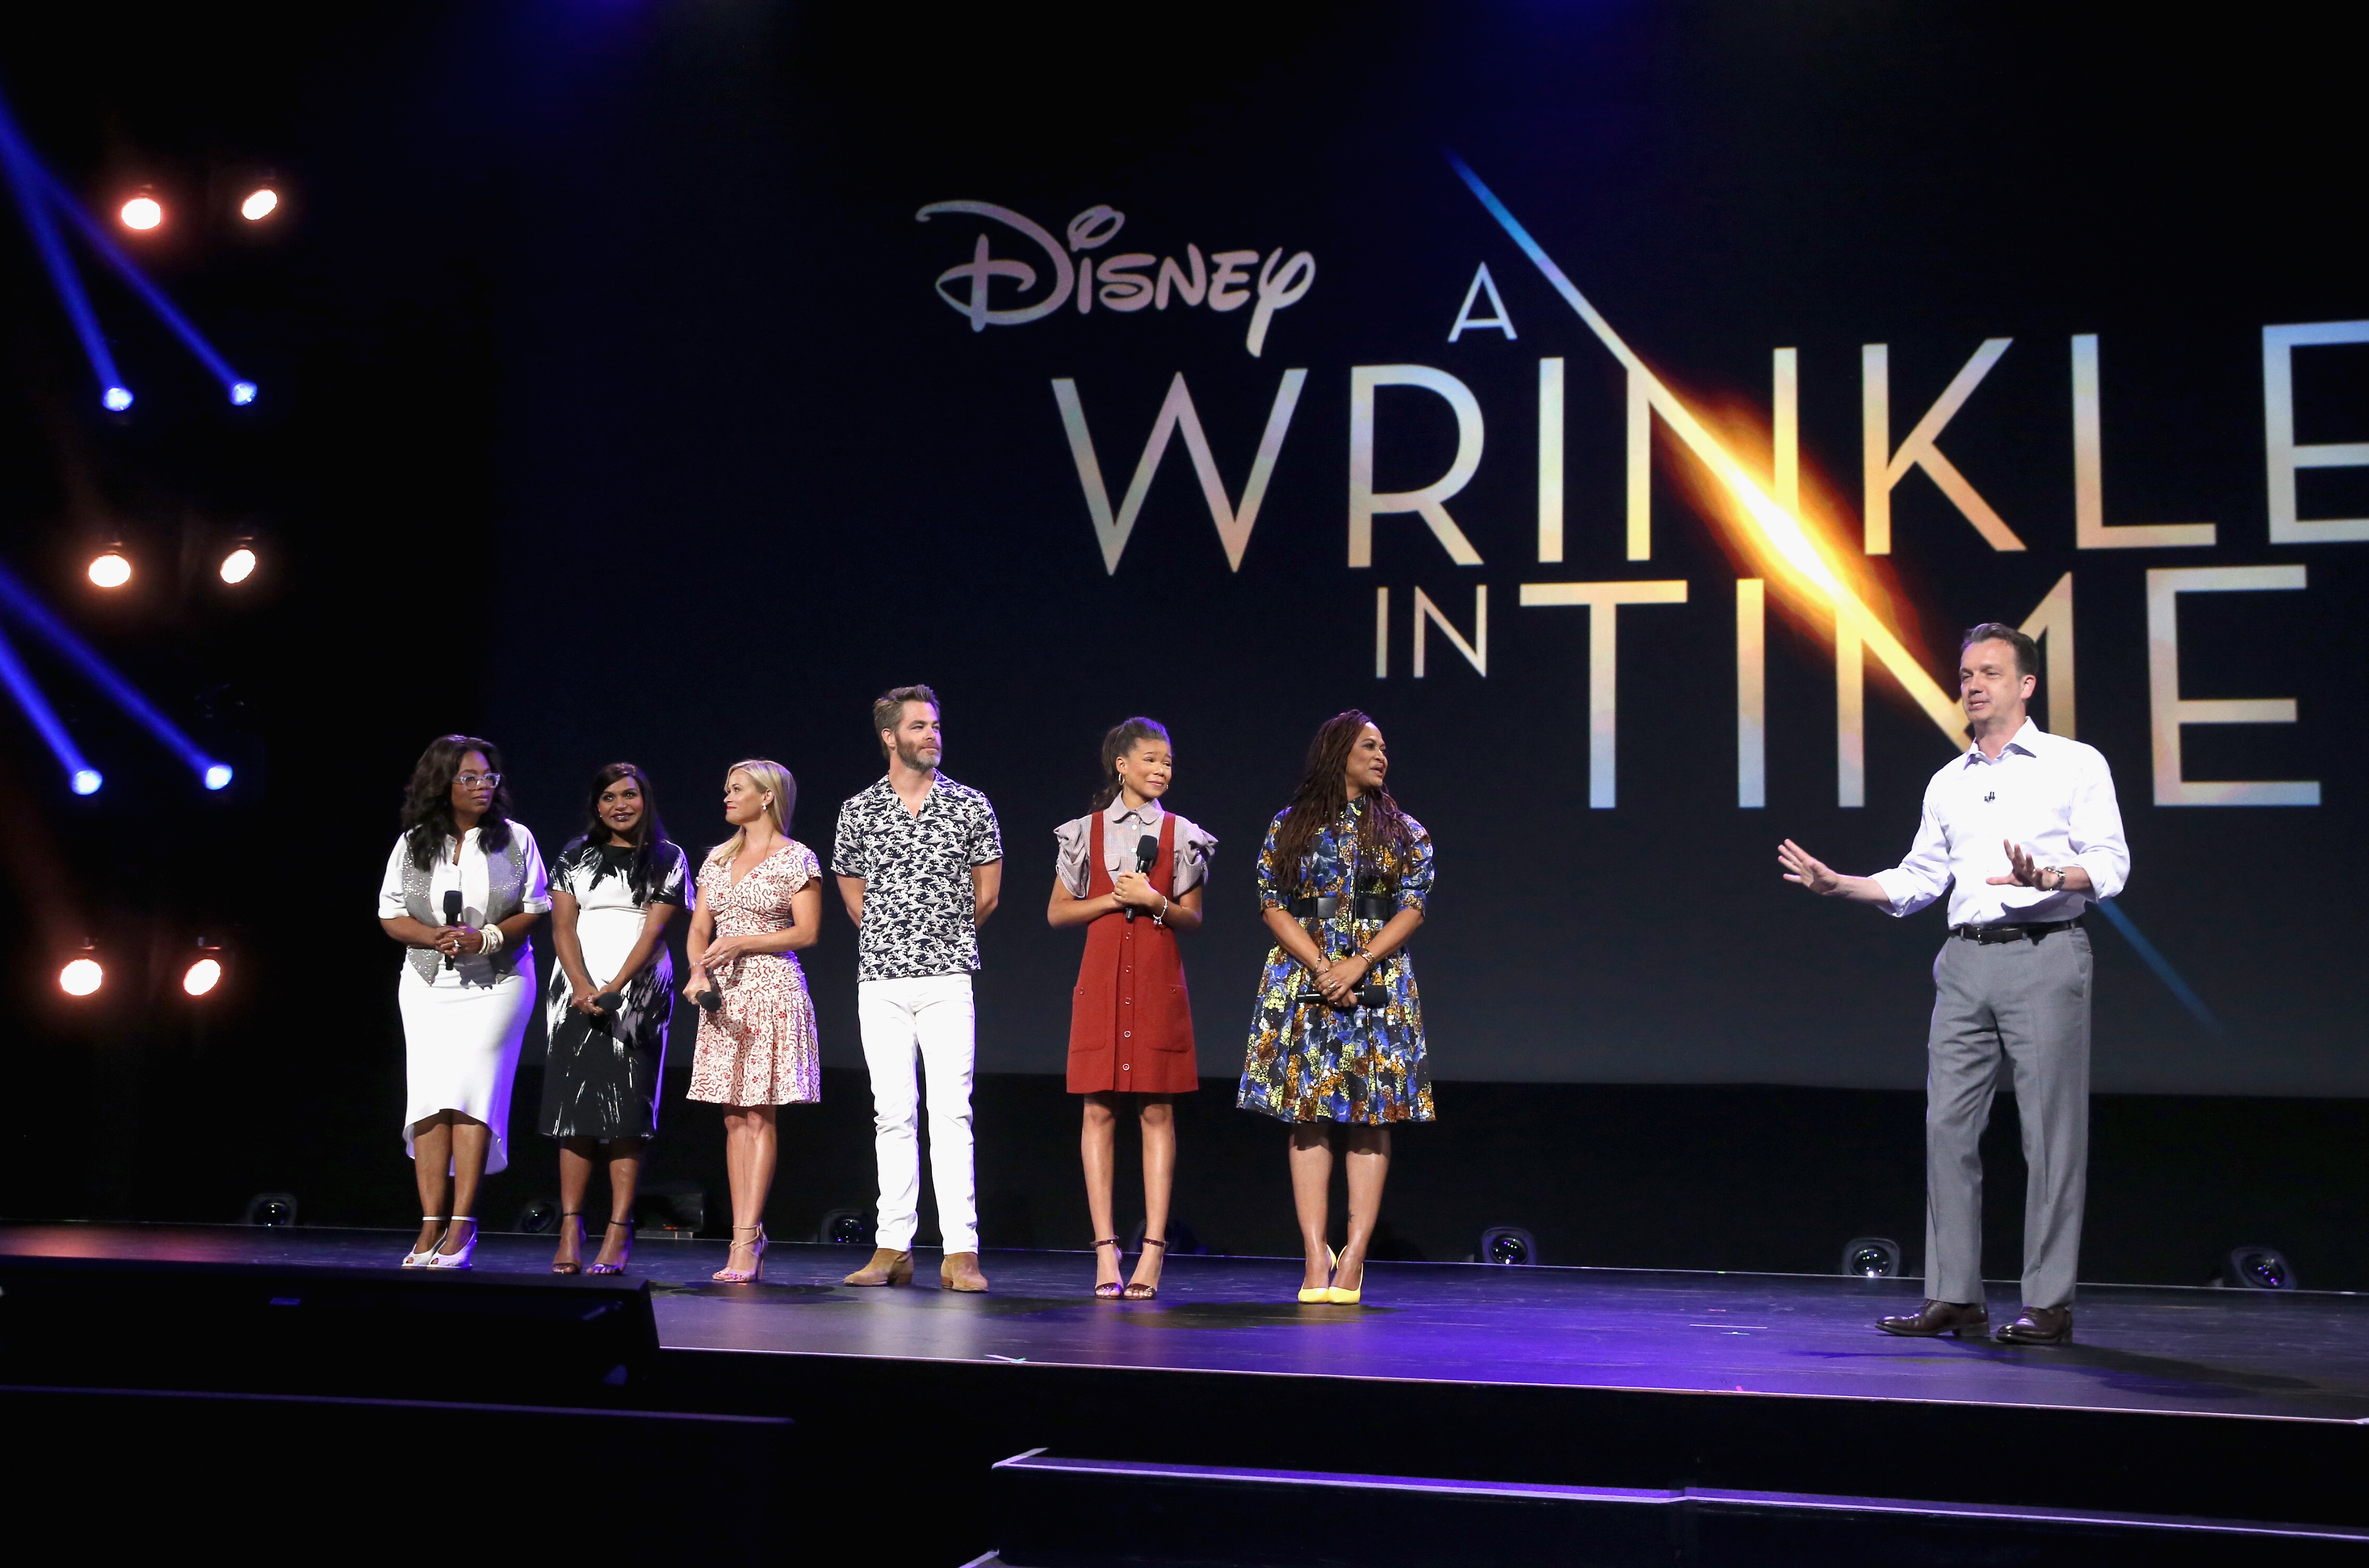 ANAHEIM, CA - JULY 15: (L-R) Actors Oprah Winfrey, Mindy Kaling, Reese Witherspoon, Chris Pine, Storm Reid of A WRINKLE IN TIME, director Ava DuVernay of A WRINKLE IN TIME, and President of Walt Disney Studios Motion Picture Production Sean Bailey took part today in the Walt Disney Studios live action presentation at Disney's D23 EXPO 2017 in Anaheim, Calif. A WRINKLE IN TIME will be released in U.S. theaters on March 9, 2018. (Photo by Jesse Grant/Getty Images for Disney) *** Local Caption *** Reese Witherspoon; Oprah Winfrey; Mindy Kaling; Chris Pine; Storm Reid; Ava DuVernay; Sean Bailey